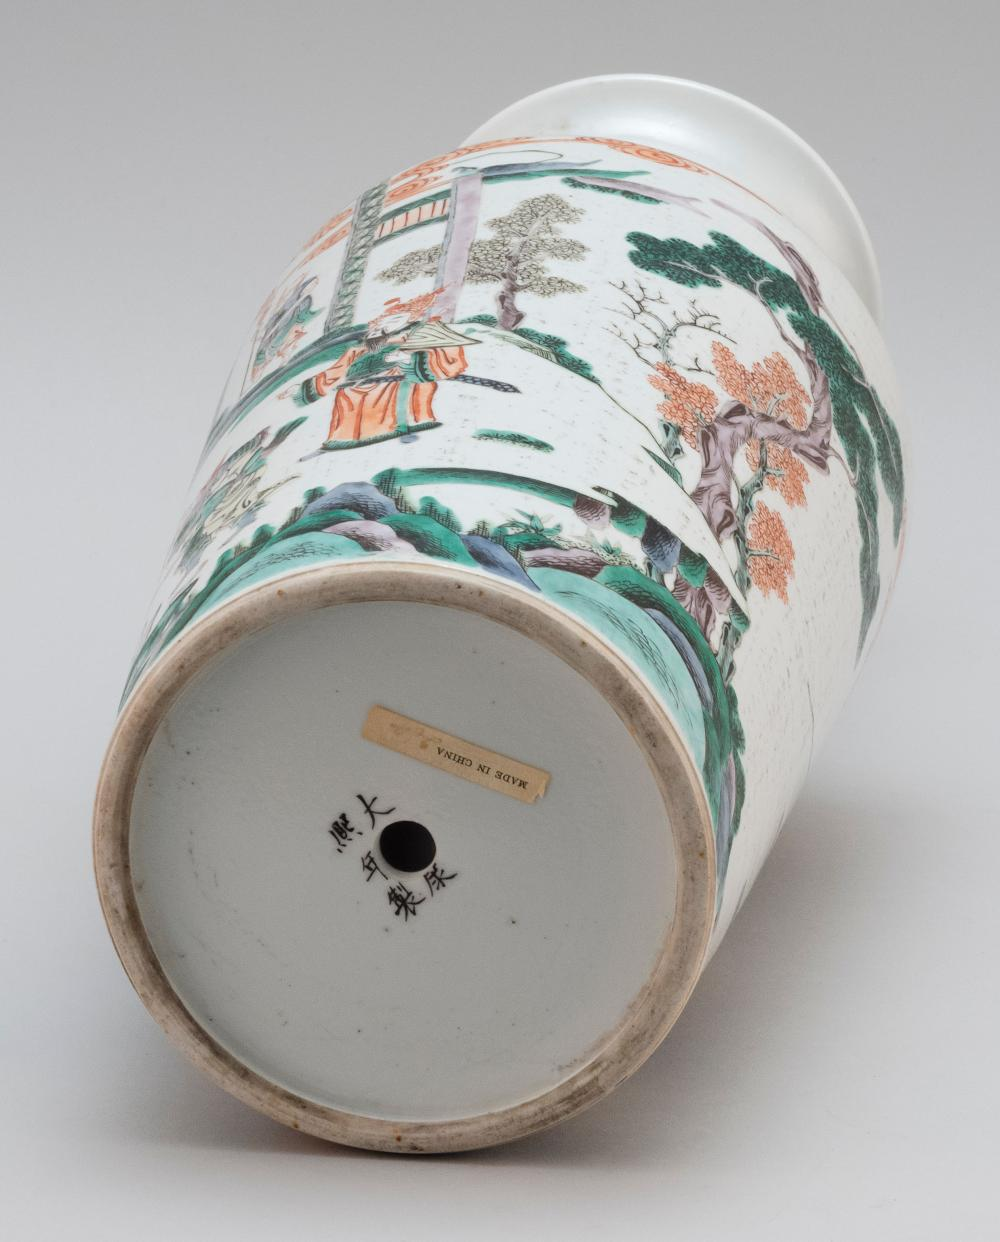 CHINESE FAMILLE VERTE PORCELAIN VASE In rouleau form, with warrior landscape scene. Six-character Kangxi mark on base. Height 17.5